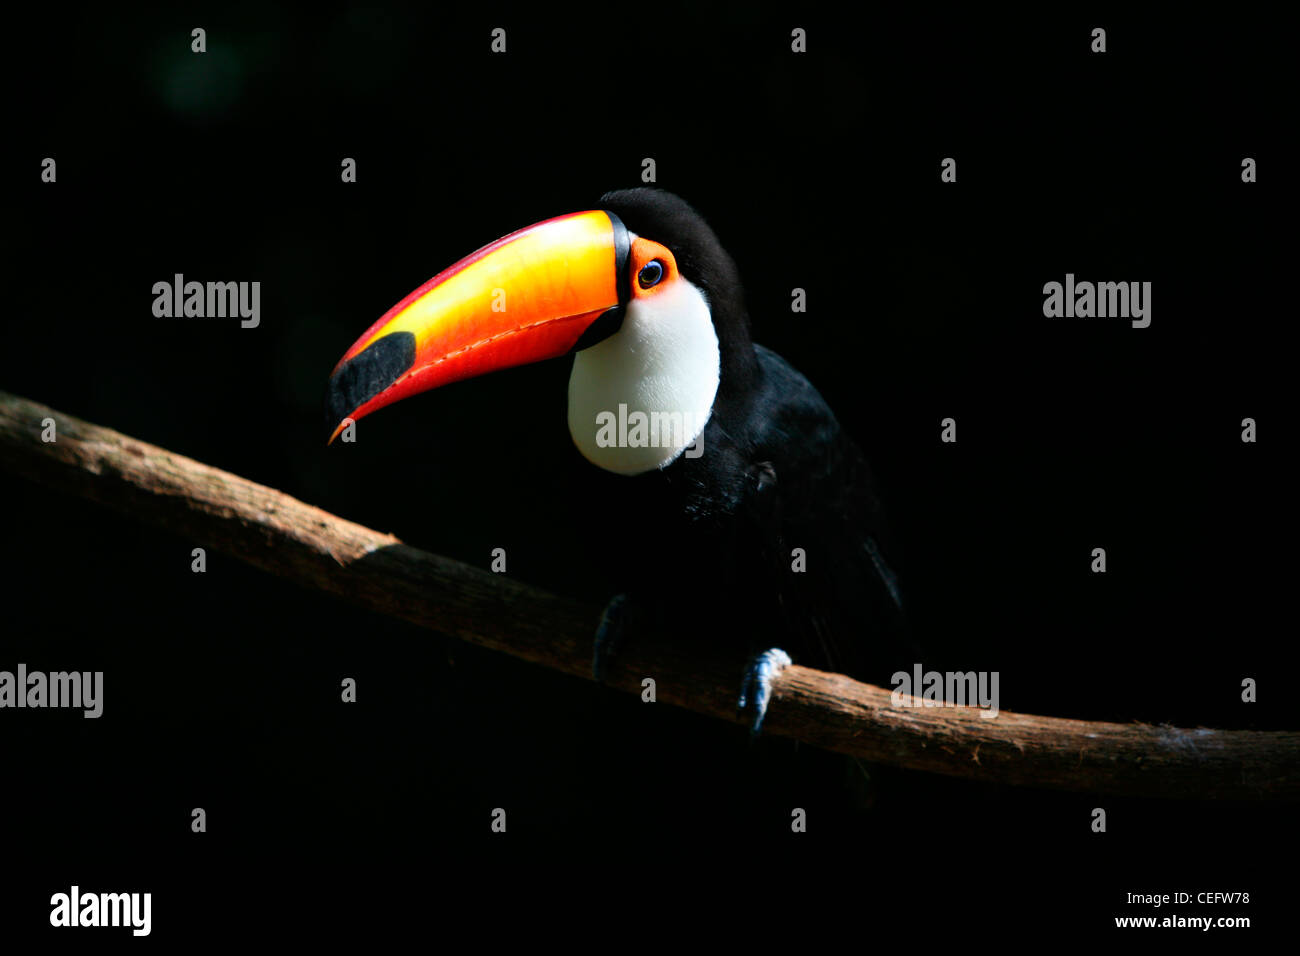 Portrait of a Toco toucans (Ramphastos toco) in tree hole, Pantanal, Brazil Stock Photo